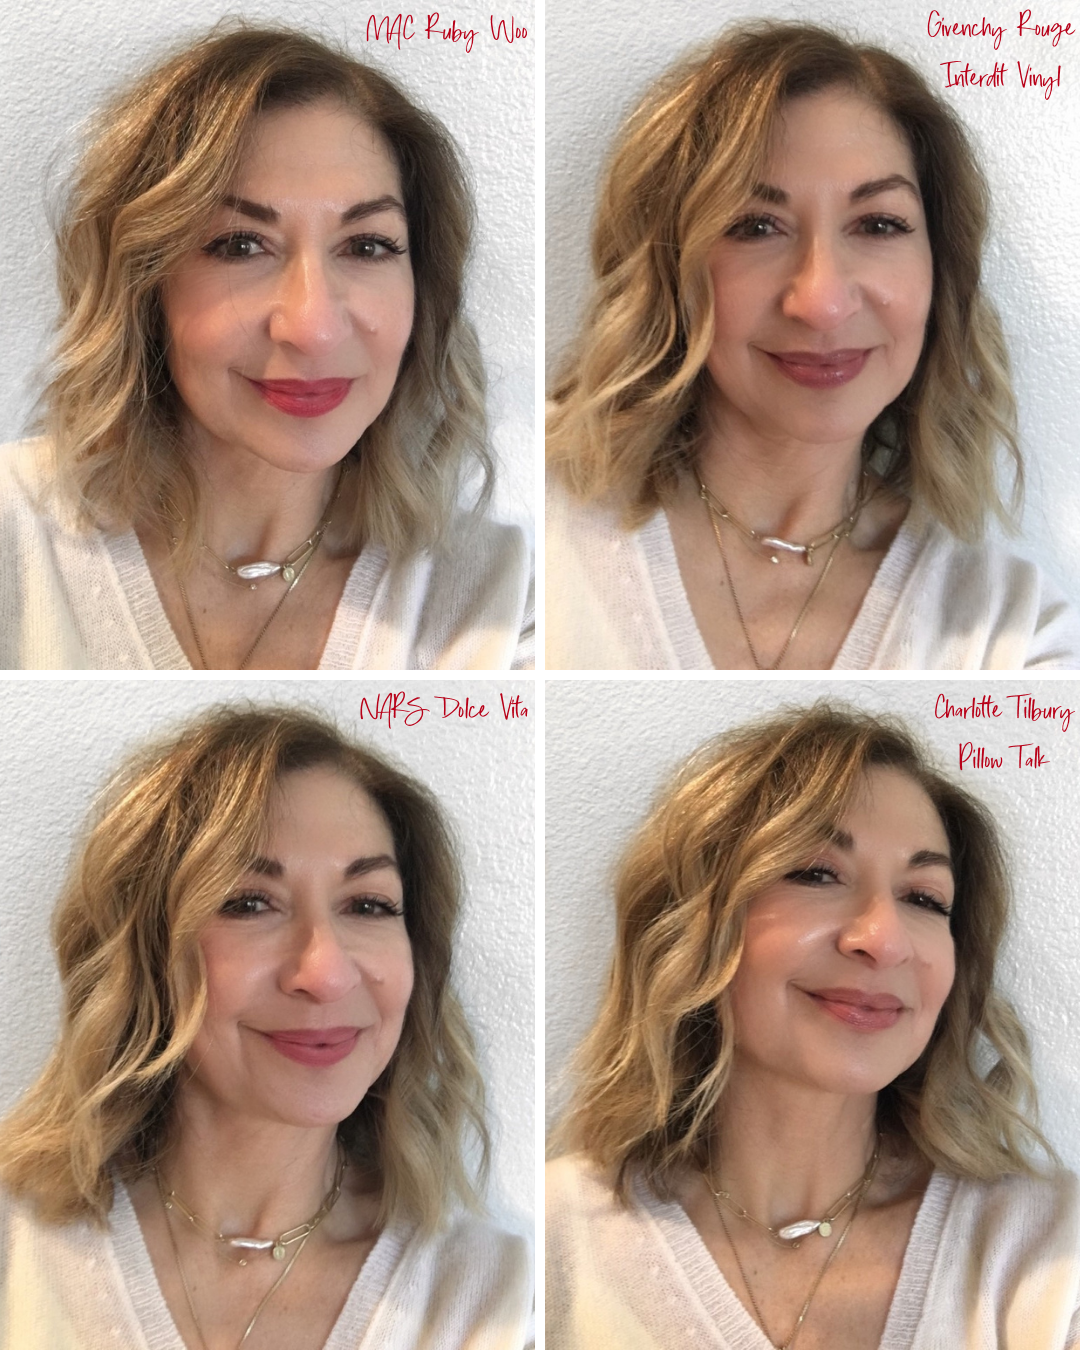 Go-To Lip Colors For Women Over 40 - Francine Wearing 4 Lip Colors including MAC Ruby Woo, Givenchy Rouge Interdit Vinyl, NARS Dolce Vita, and Charlotte Tilbury Pillow Talk